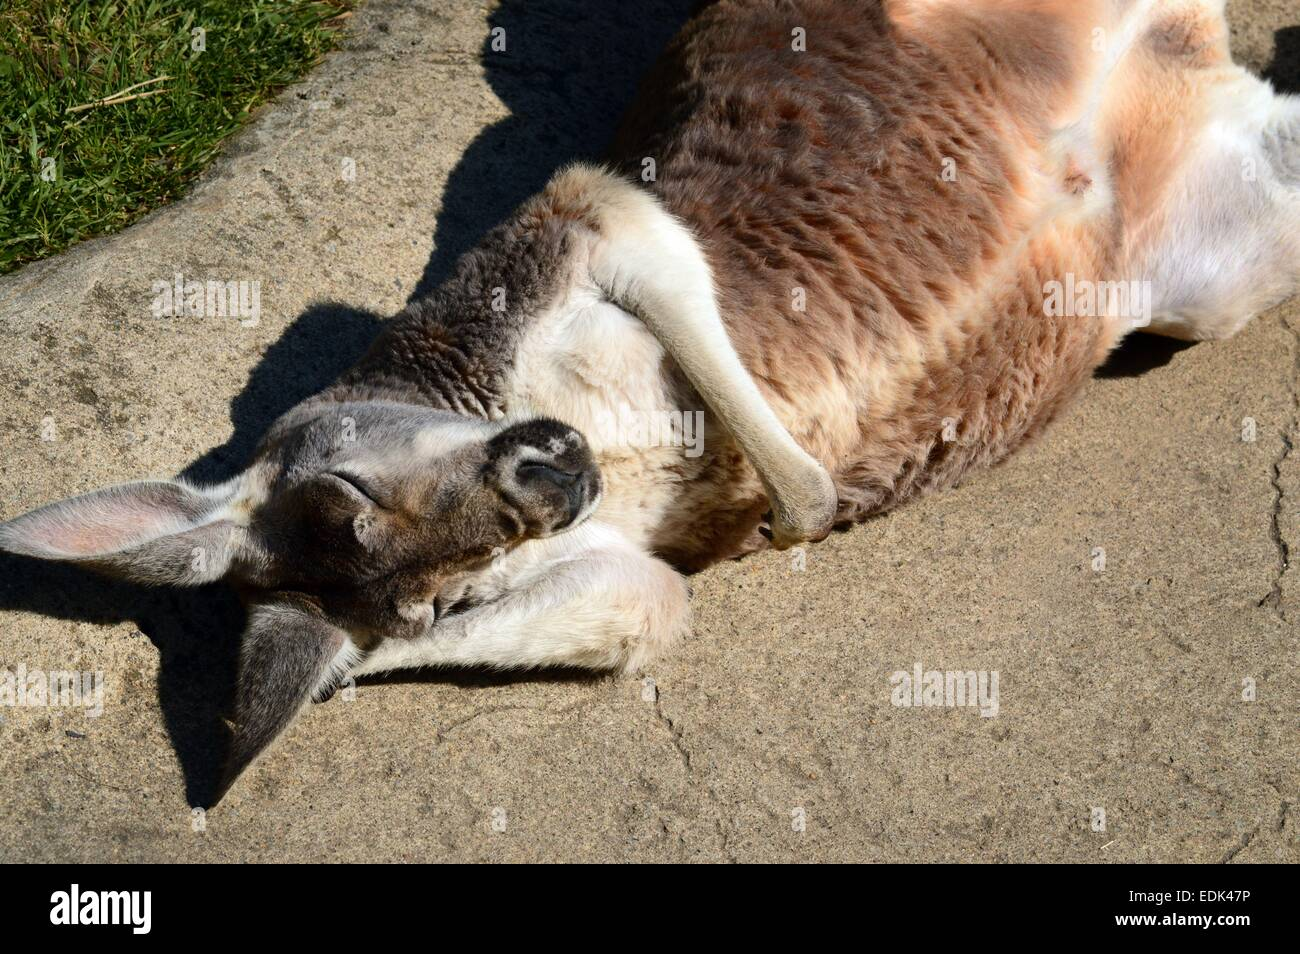 A kangaroo relaxing on her back basking in the warm sunshine lazily scratching her ears - Stock Image